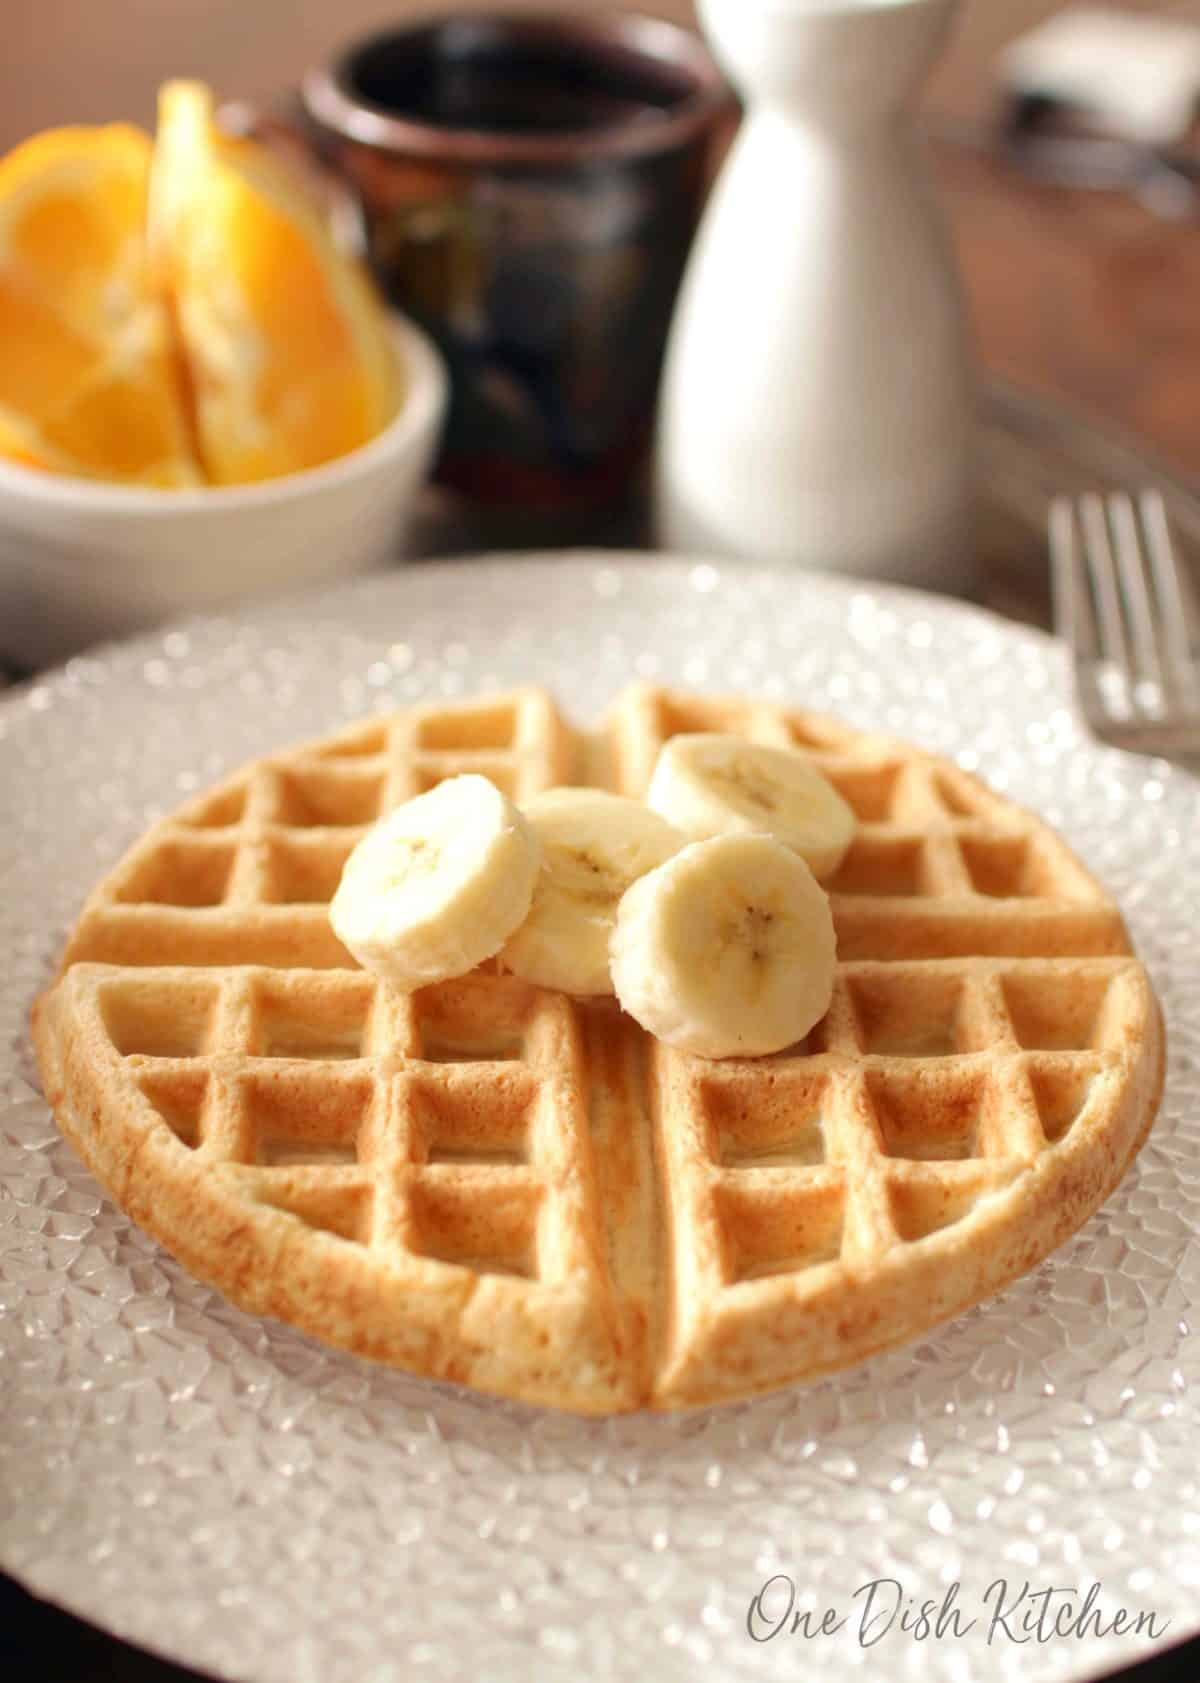 A waffle topped with banana slices on a large plate with a mug of coffee and orange slices in the background